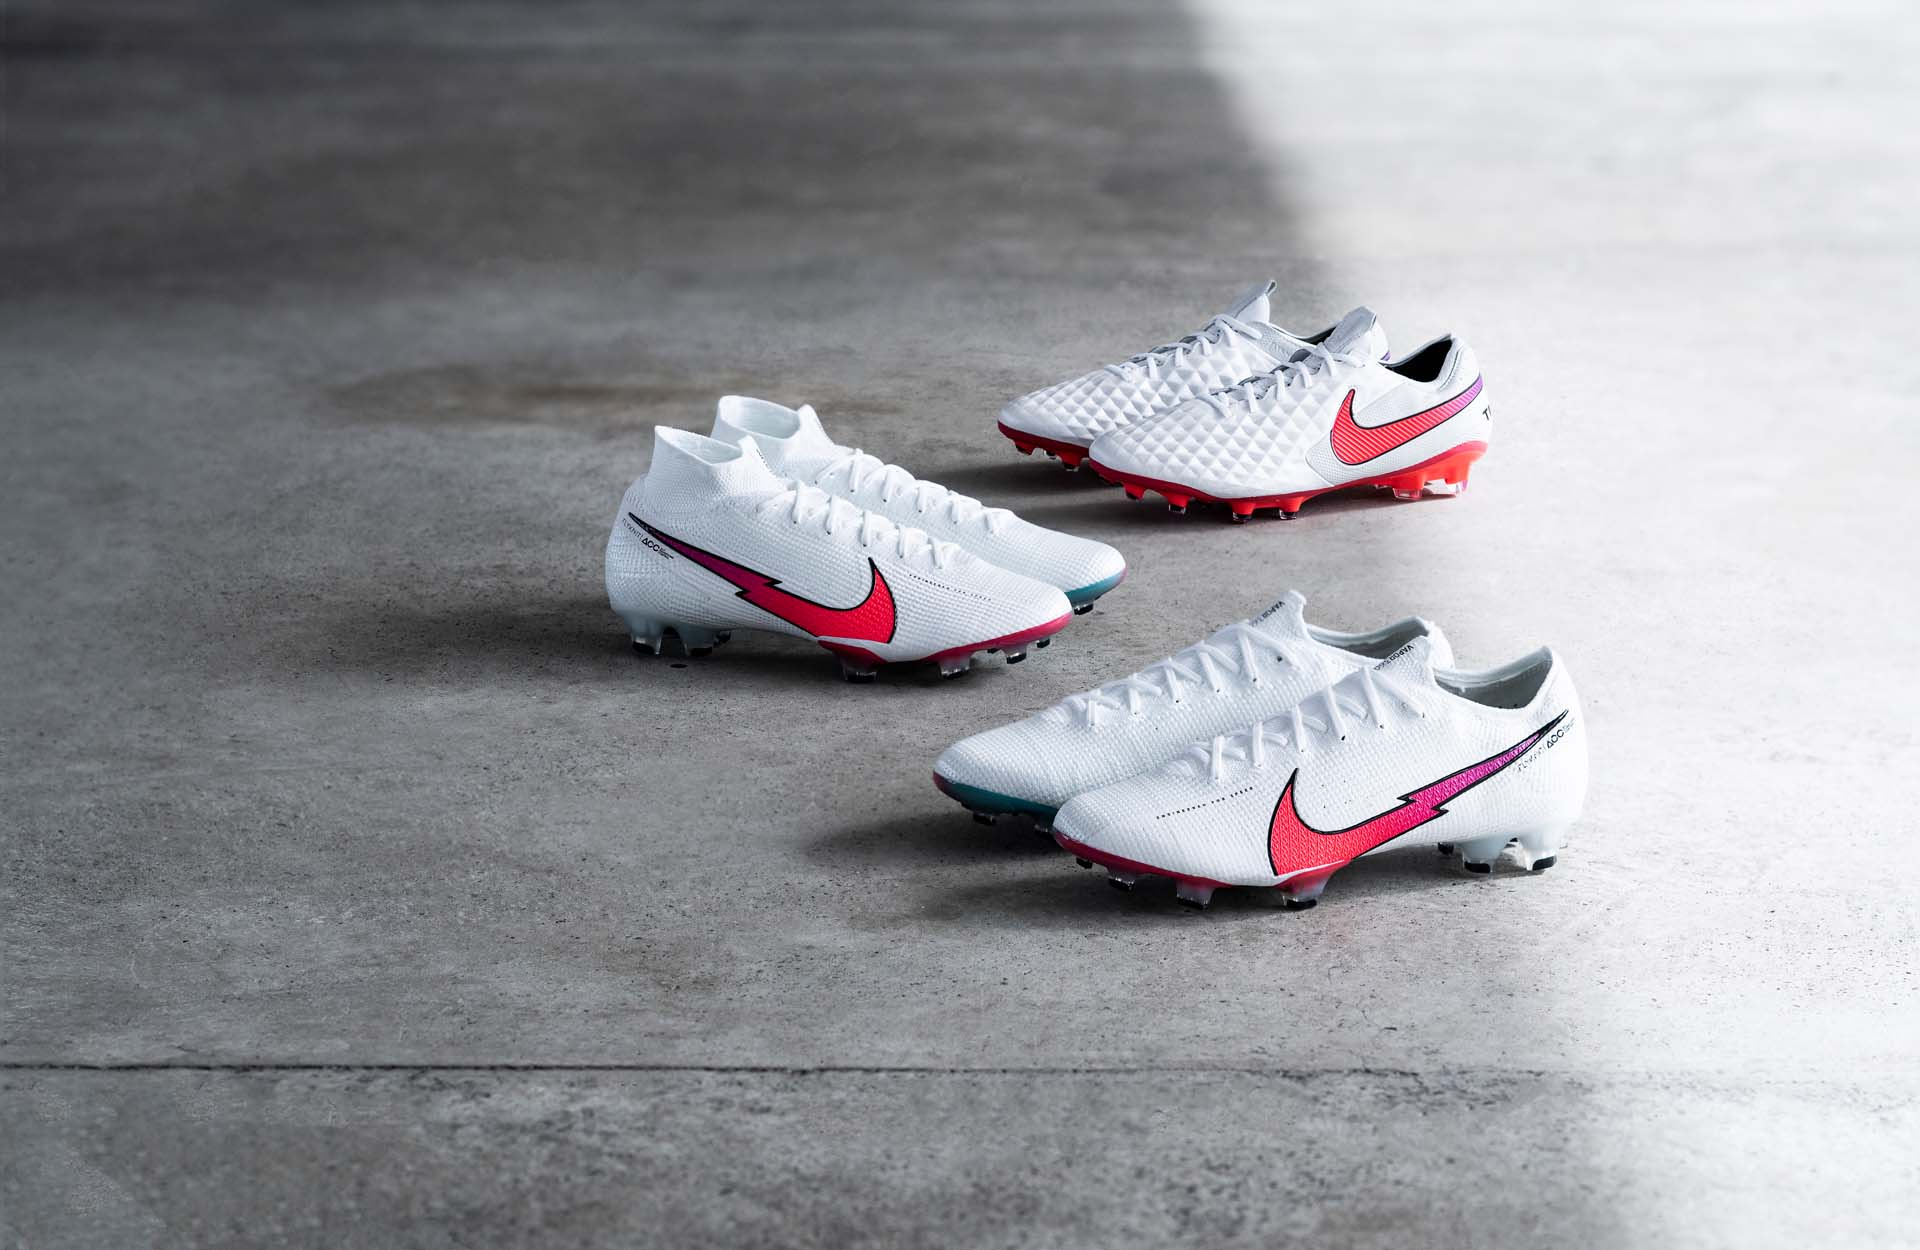 Nike Mercurial Superfly - The Flash Crimson Pack